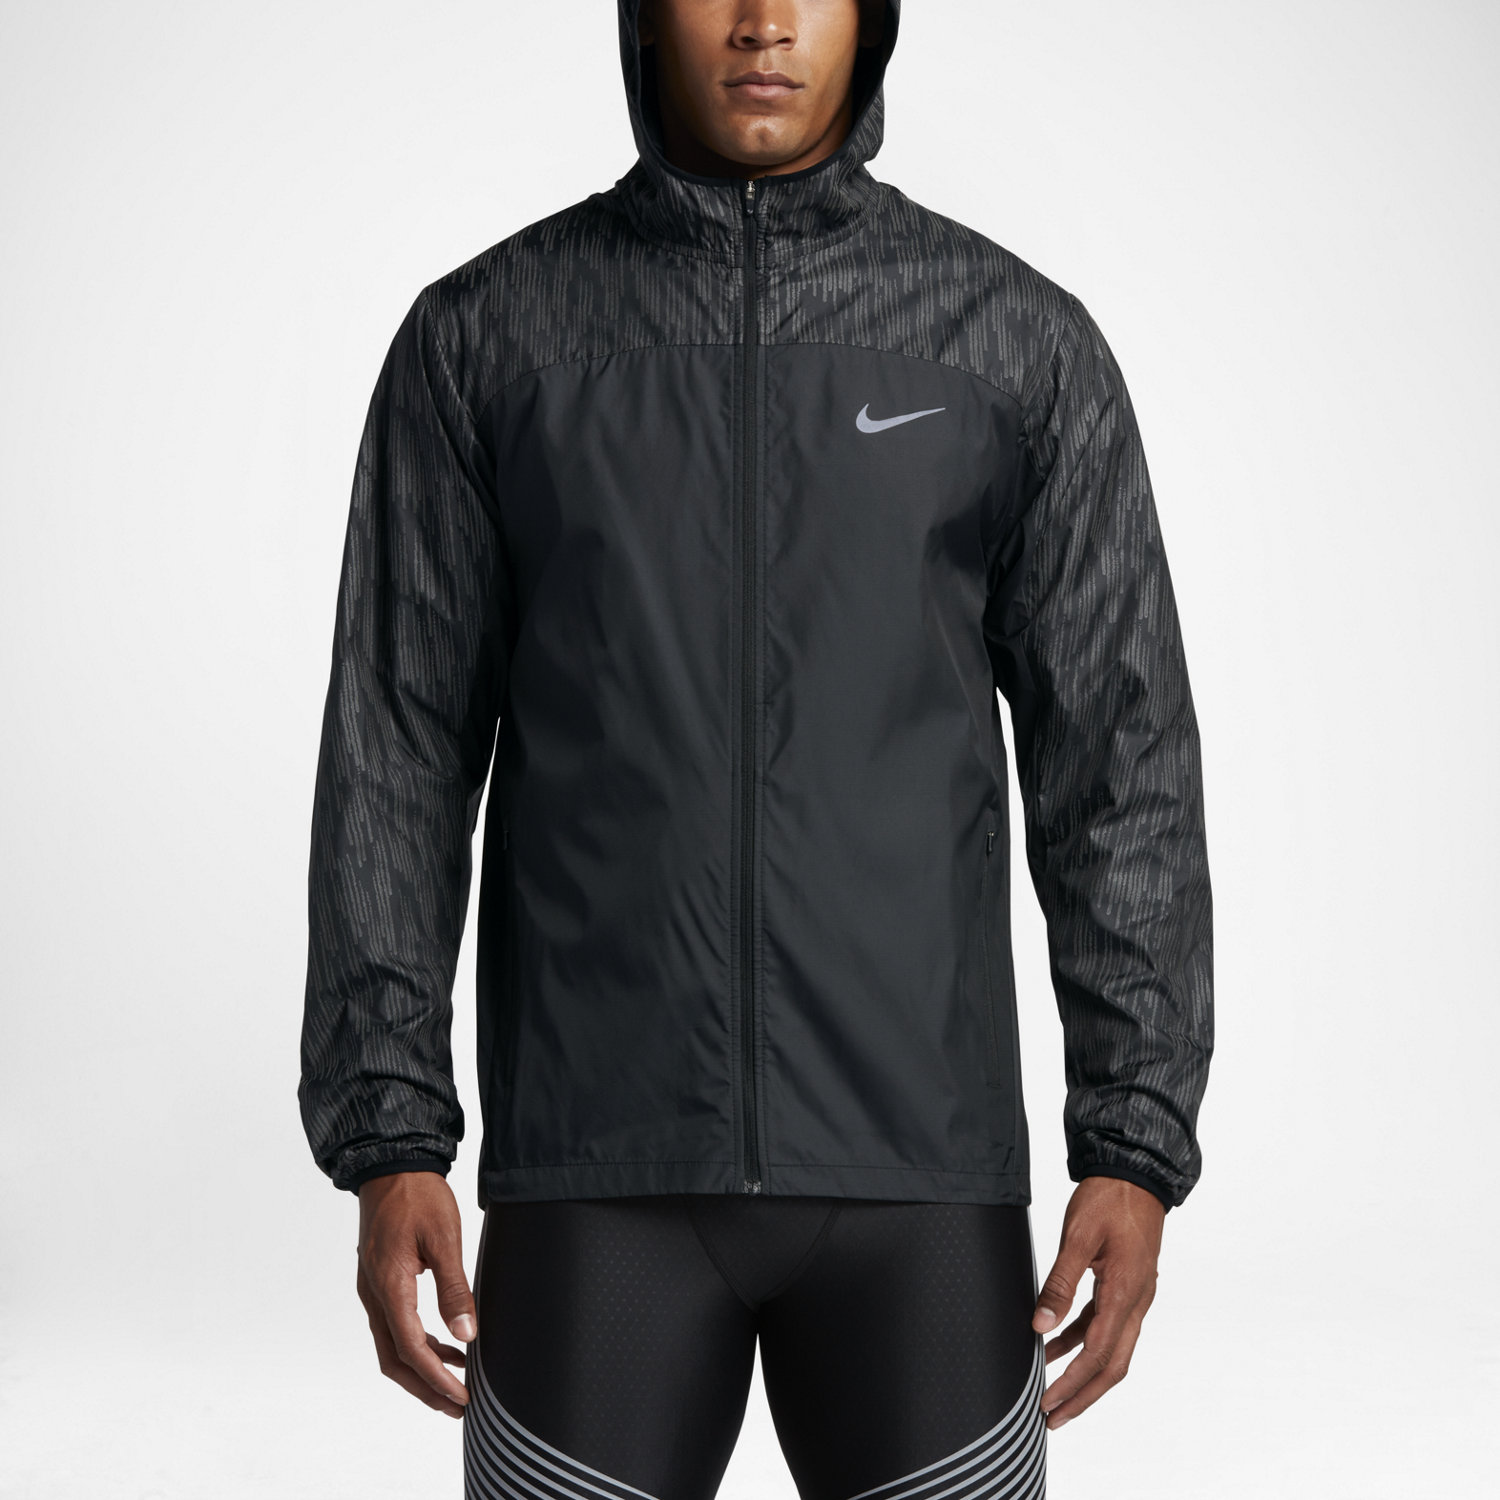 Nike Veste Shield Homm Running Homme Pqwfouh Flash TO6ggX7